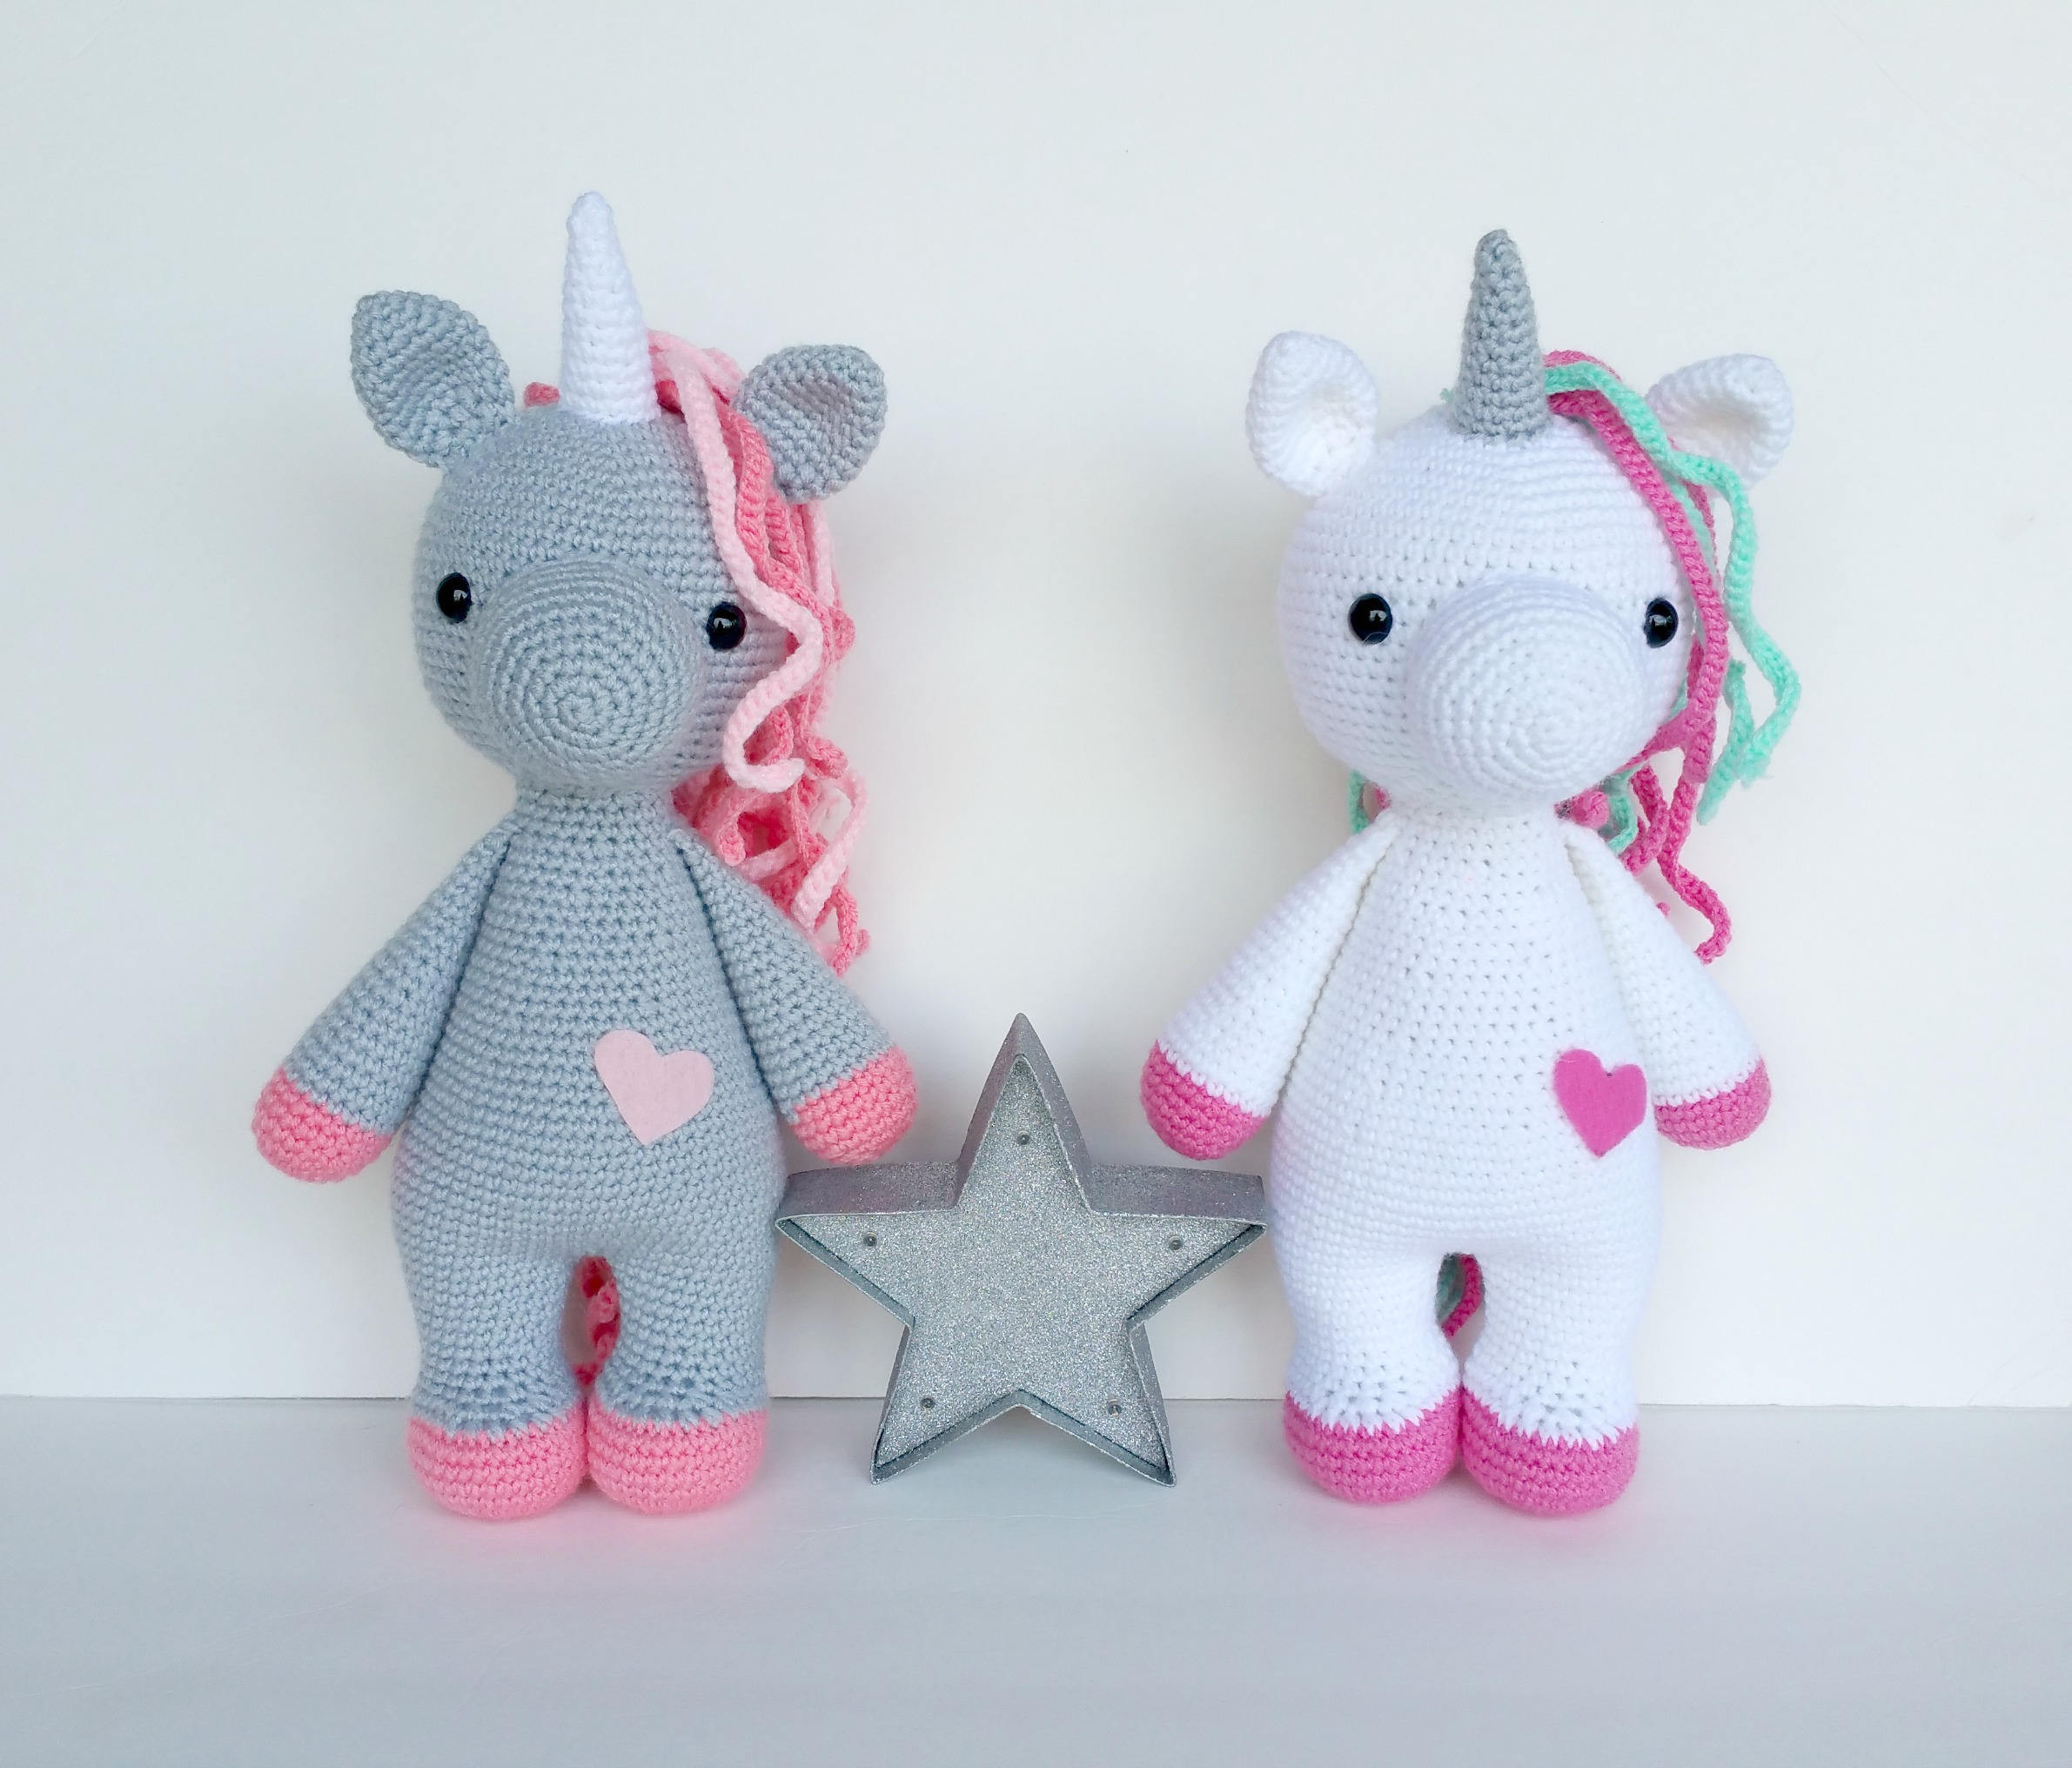 Free Unicorn Crochet Pattern Best Of Unicorn Crochet Pattern Crochet Pattern Unicorn Doll Of Free Unicorn Crochet Pattern Unique Dada Neon Crochet Tiny Rainbow Unicorn Amigurumi by